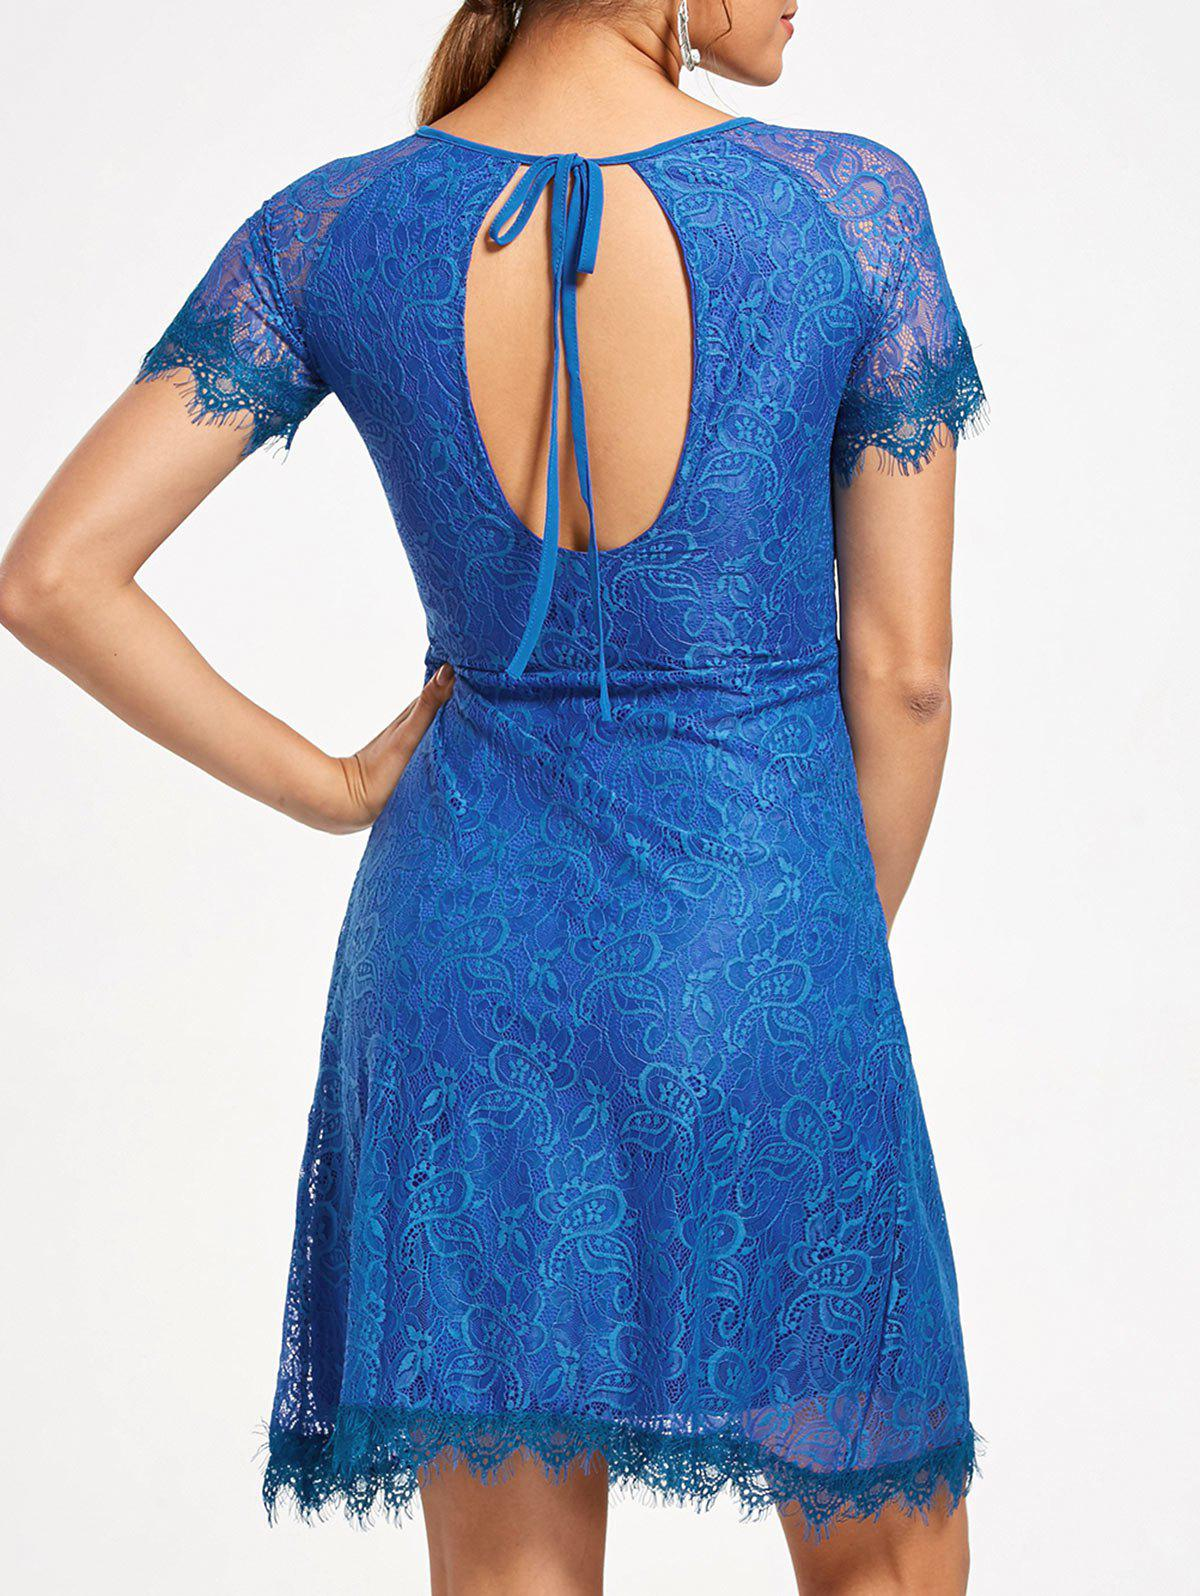 Short Raglan Sleeves Open Back Lace Dress - ROYAL S